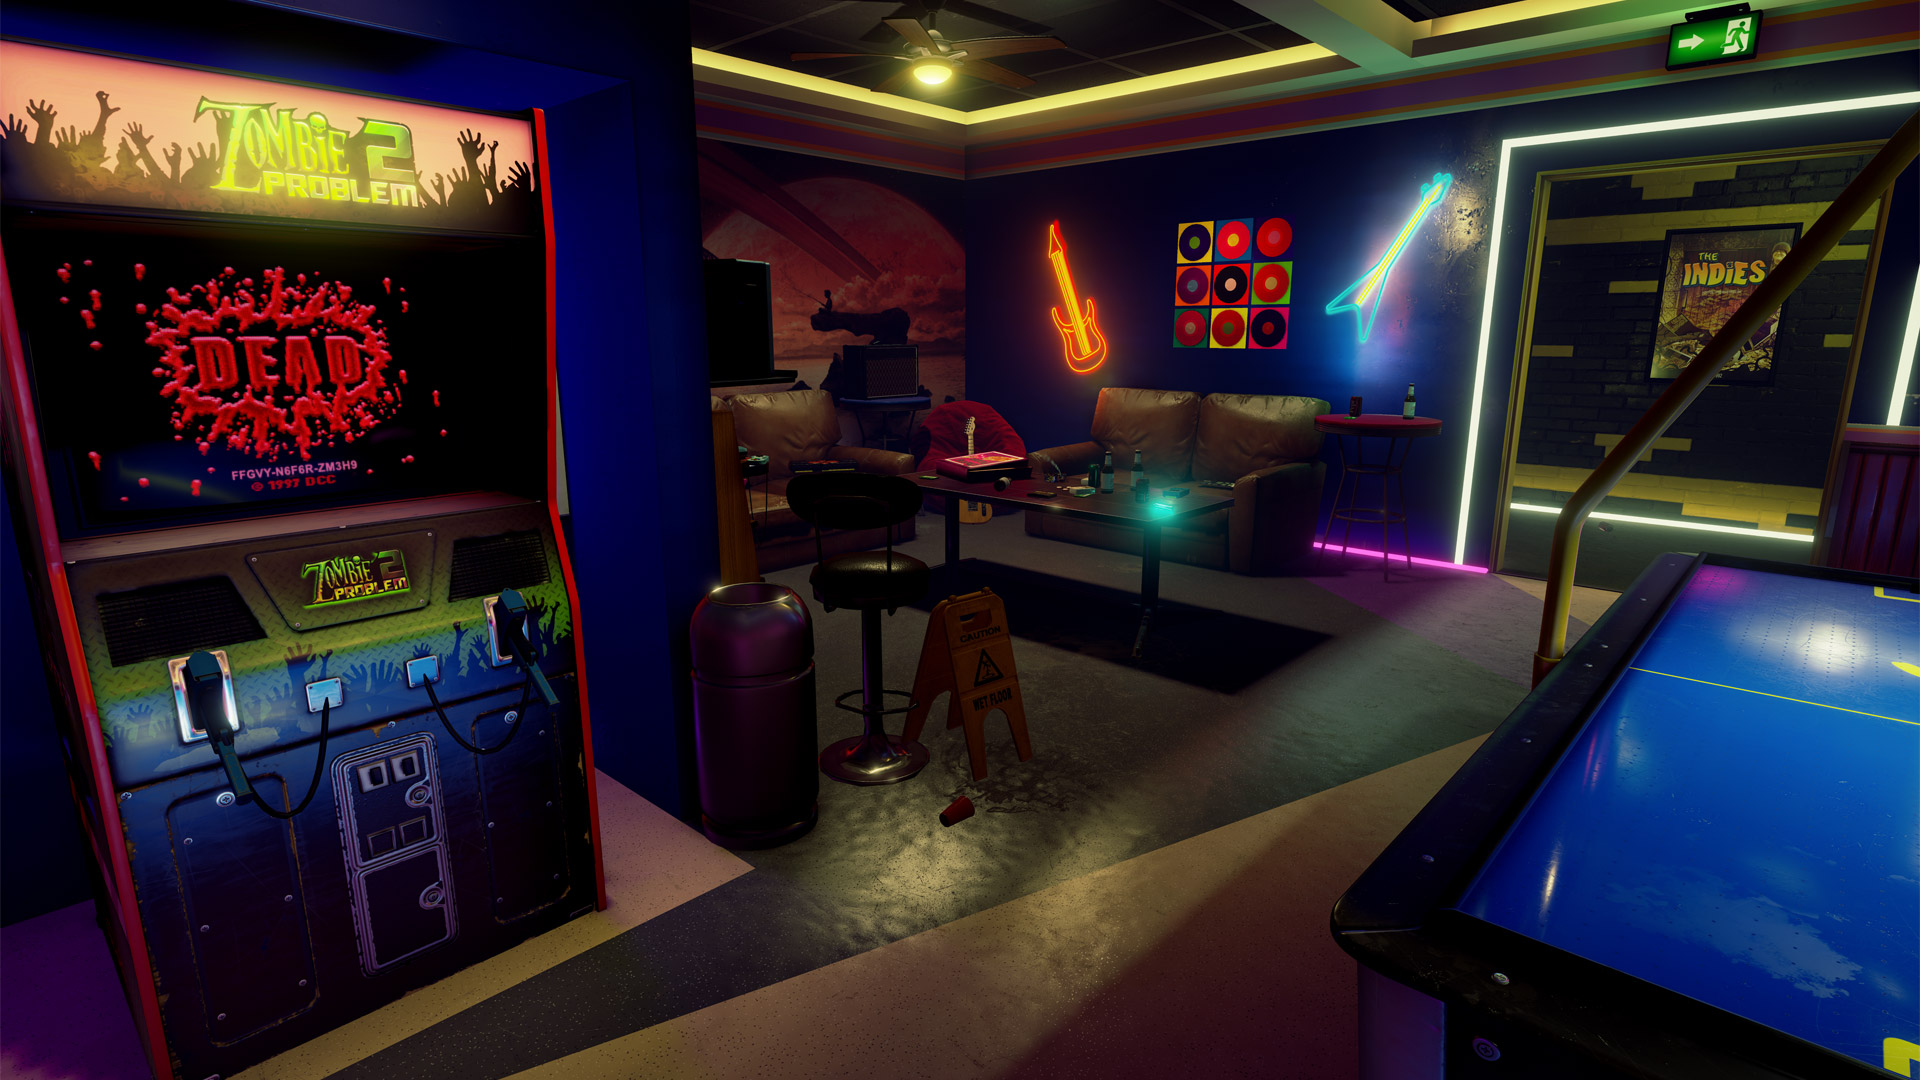 39 New Retro Arcade Neon 39 Launches On Steam For HTC Vive